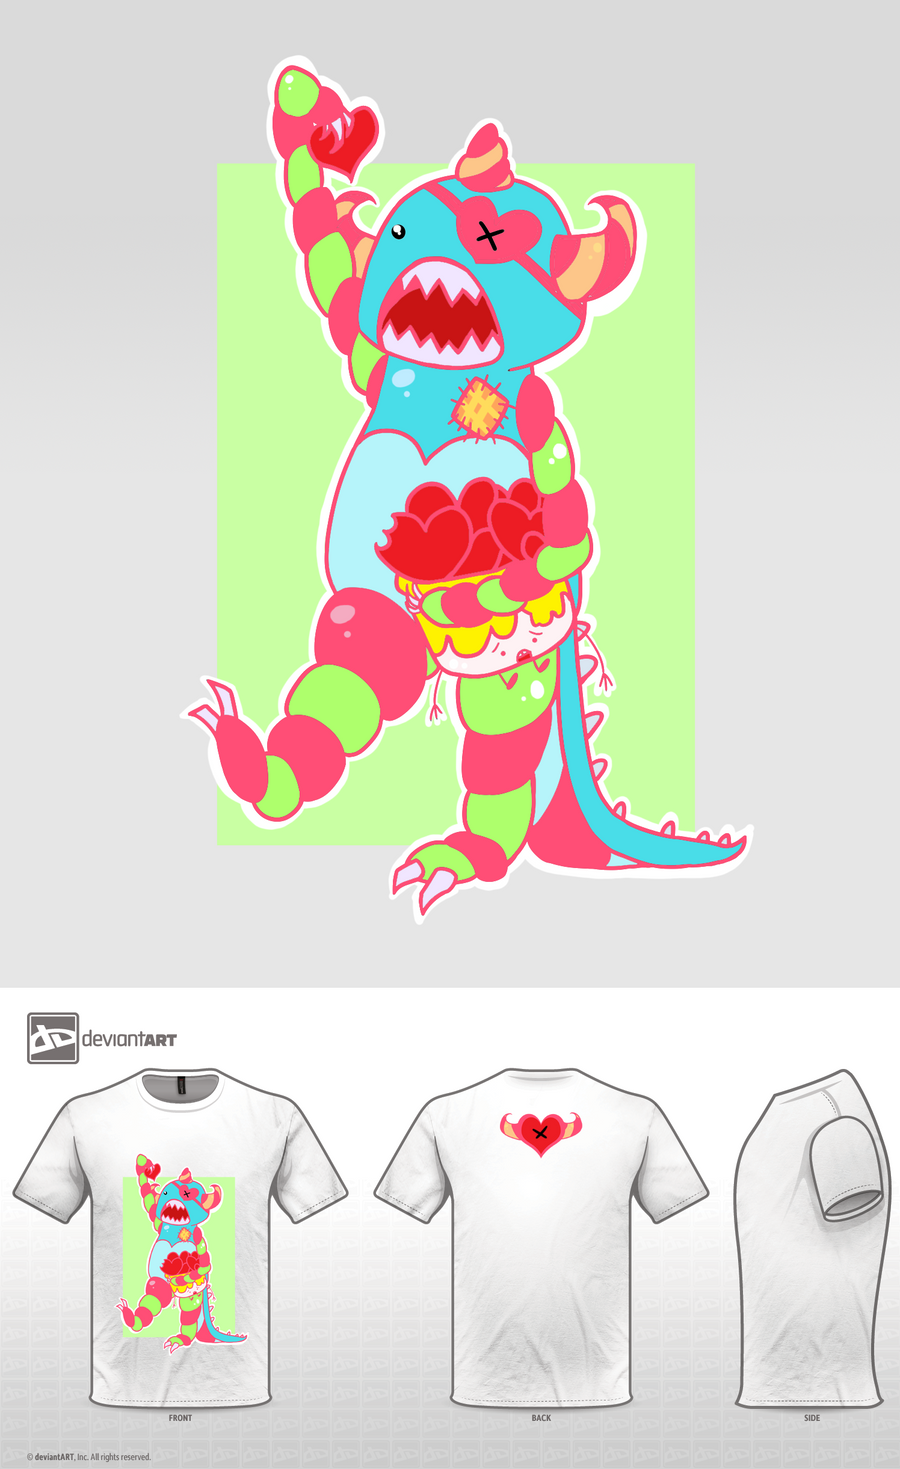 Cute Monster Design - Heart Monster by capochi